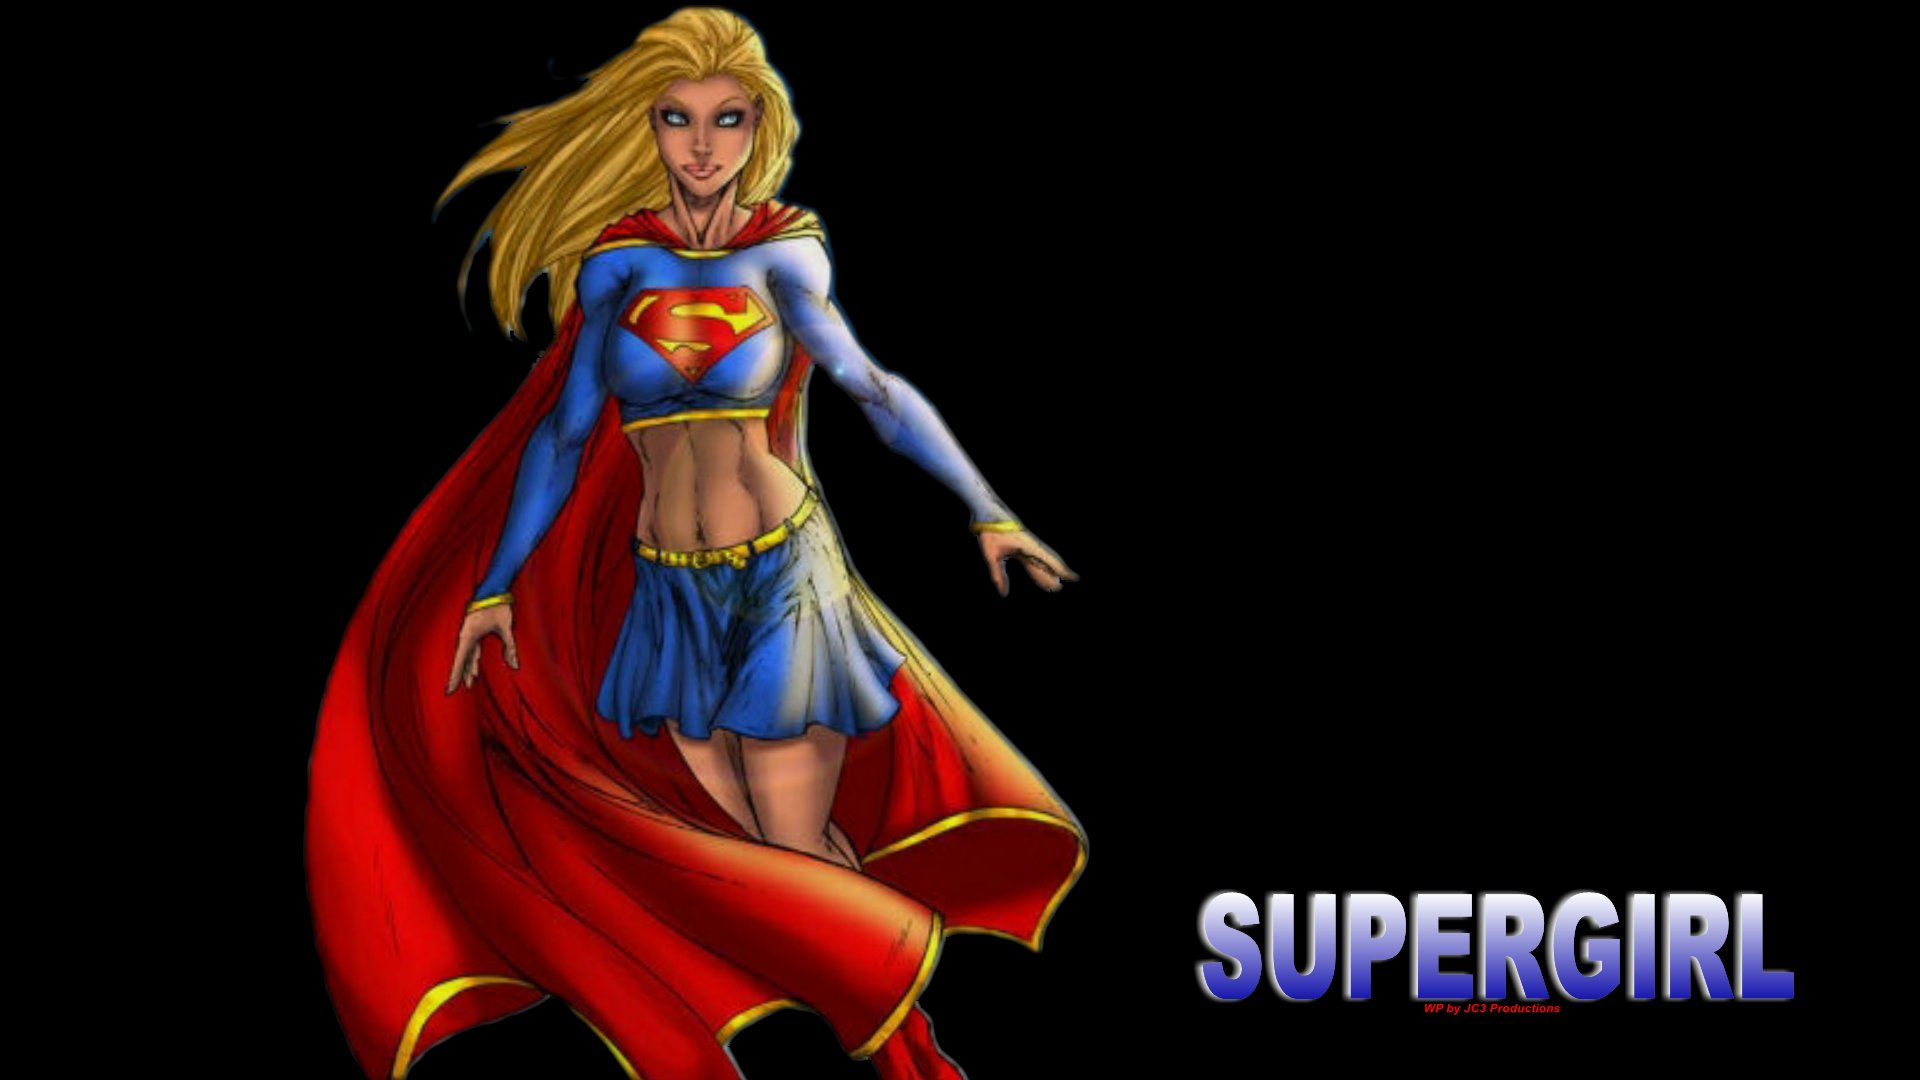 Supergirl - Alone by Curtdawg53